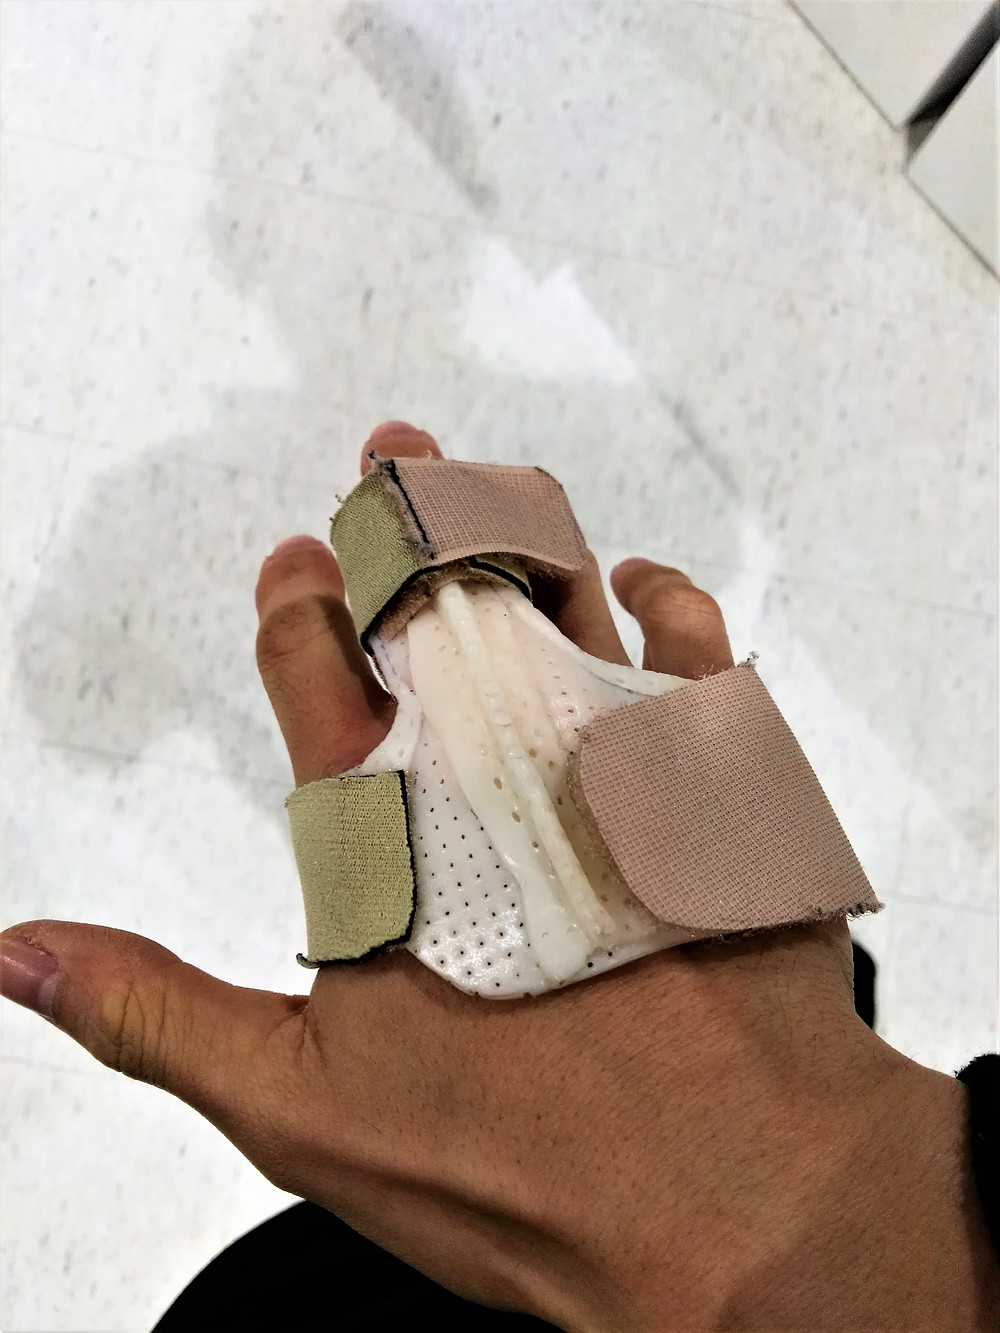 Picture of a hand in a brace